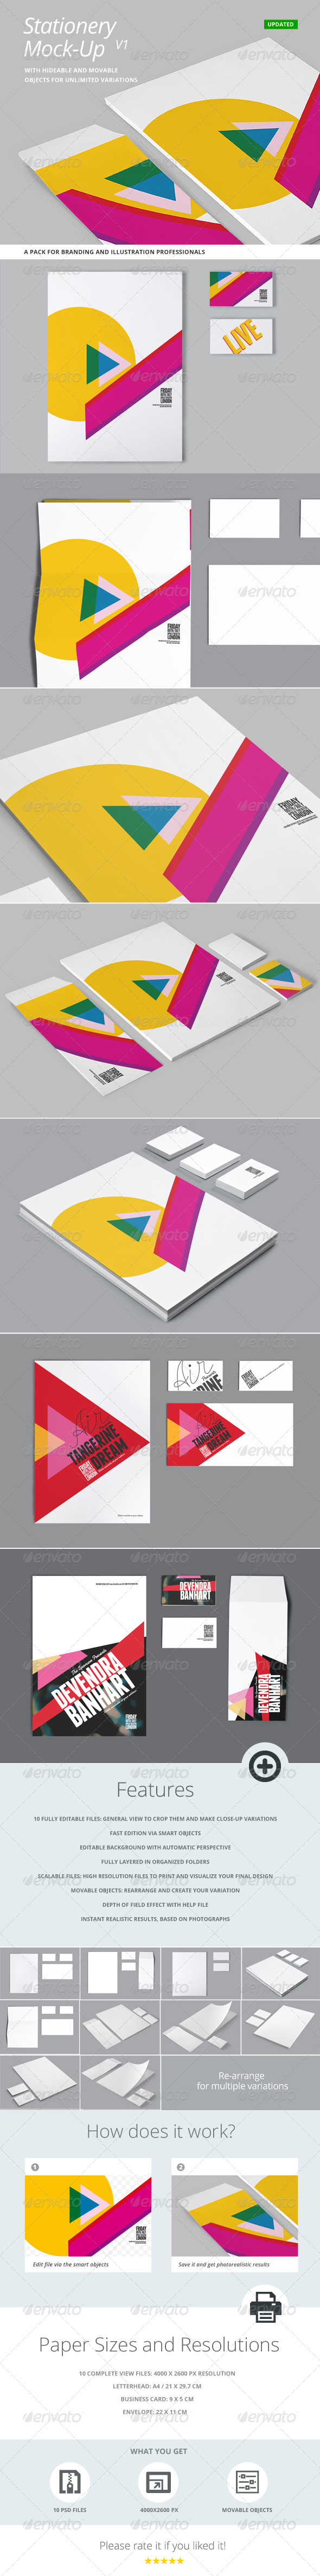 Stationery and Branding Mock Up - Stationery Print